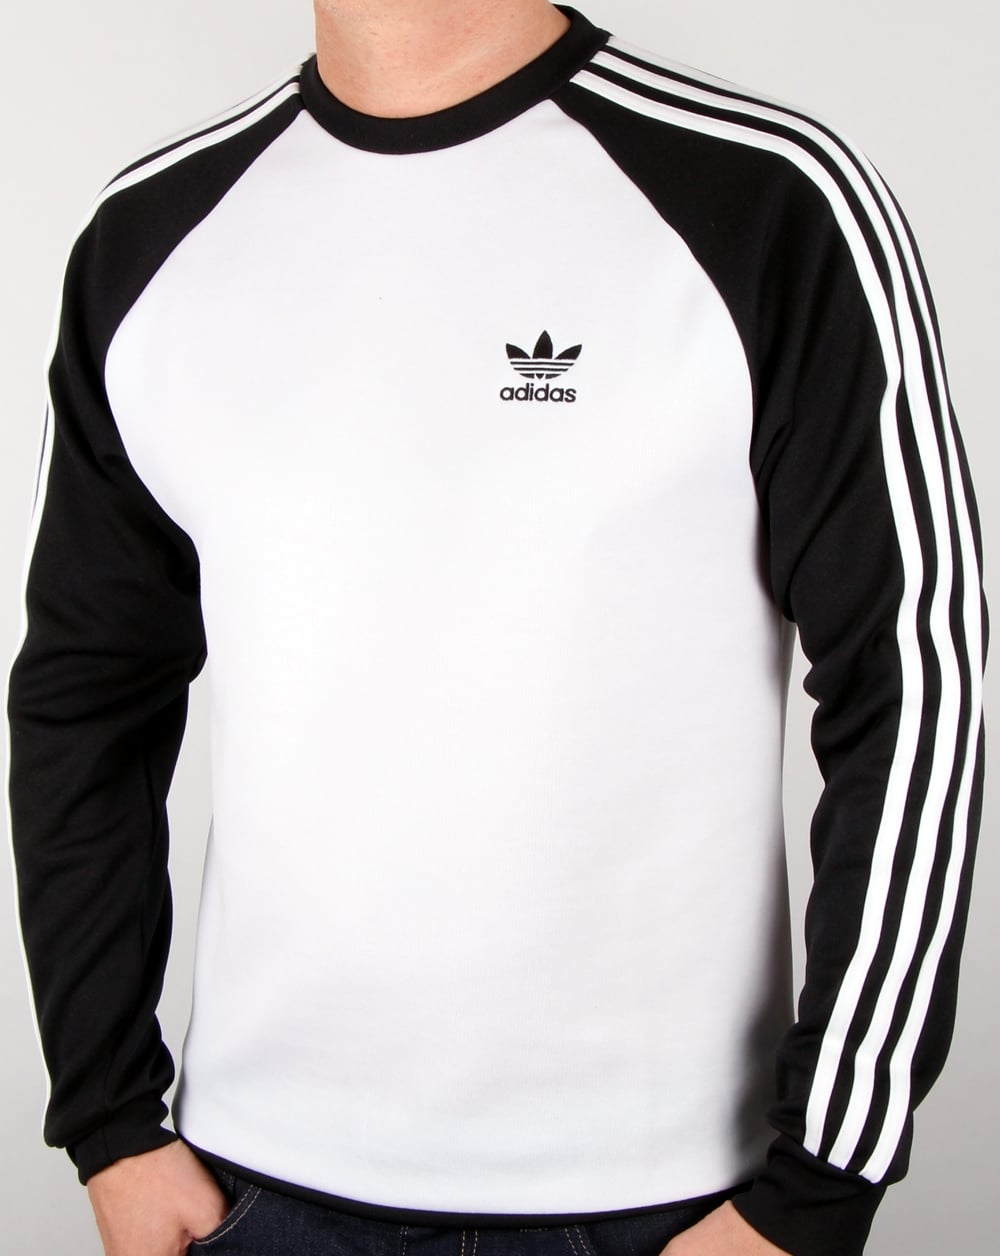 huge selection of e5267 abeec adidas Originals Adidas Originals Old Skool Sweat Top White black